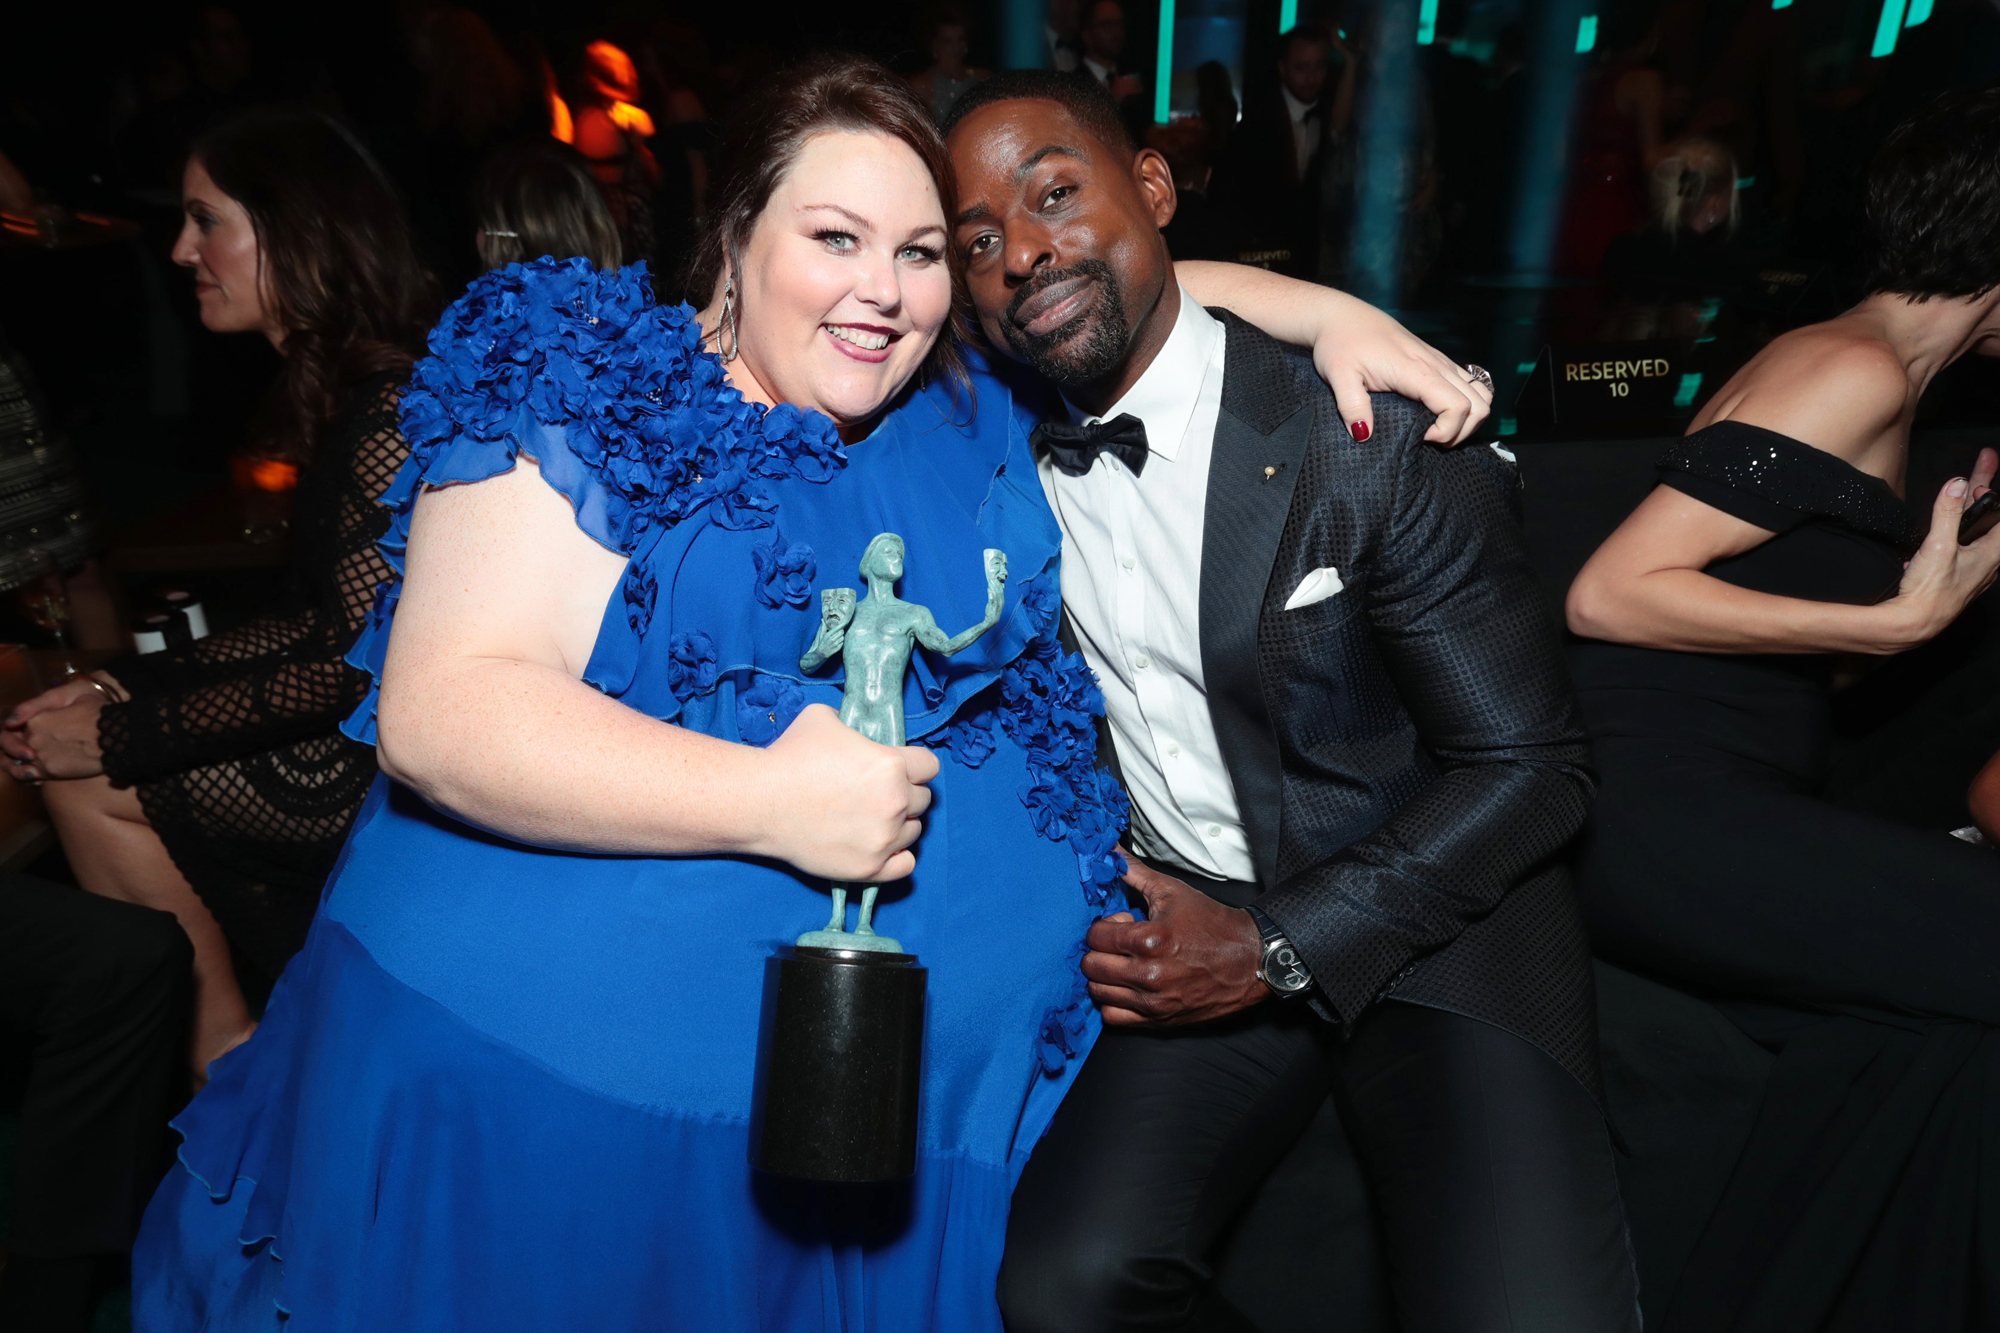 People and EIF's Annual Screen Actors Guild Awards Gala sponsored by TNT at the Shrine Auditorium, Los Angeles, CA, USA - 21 January 2018